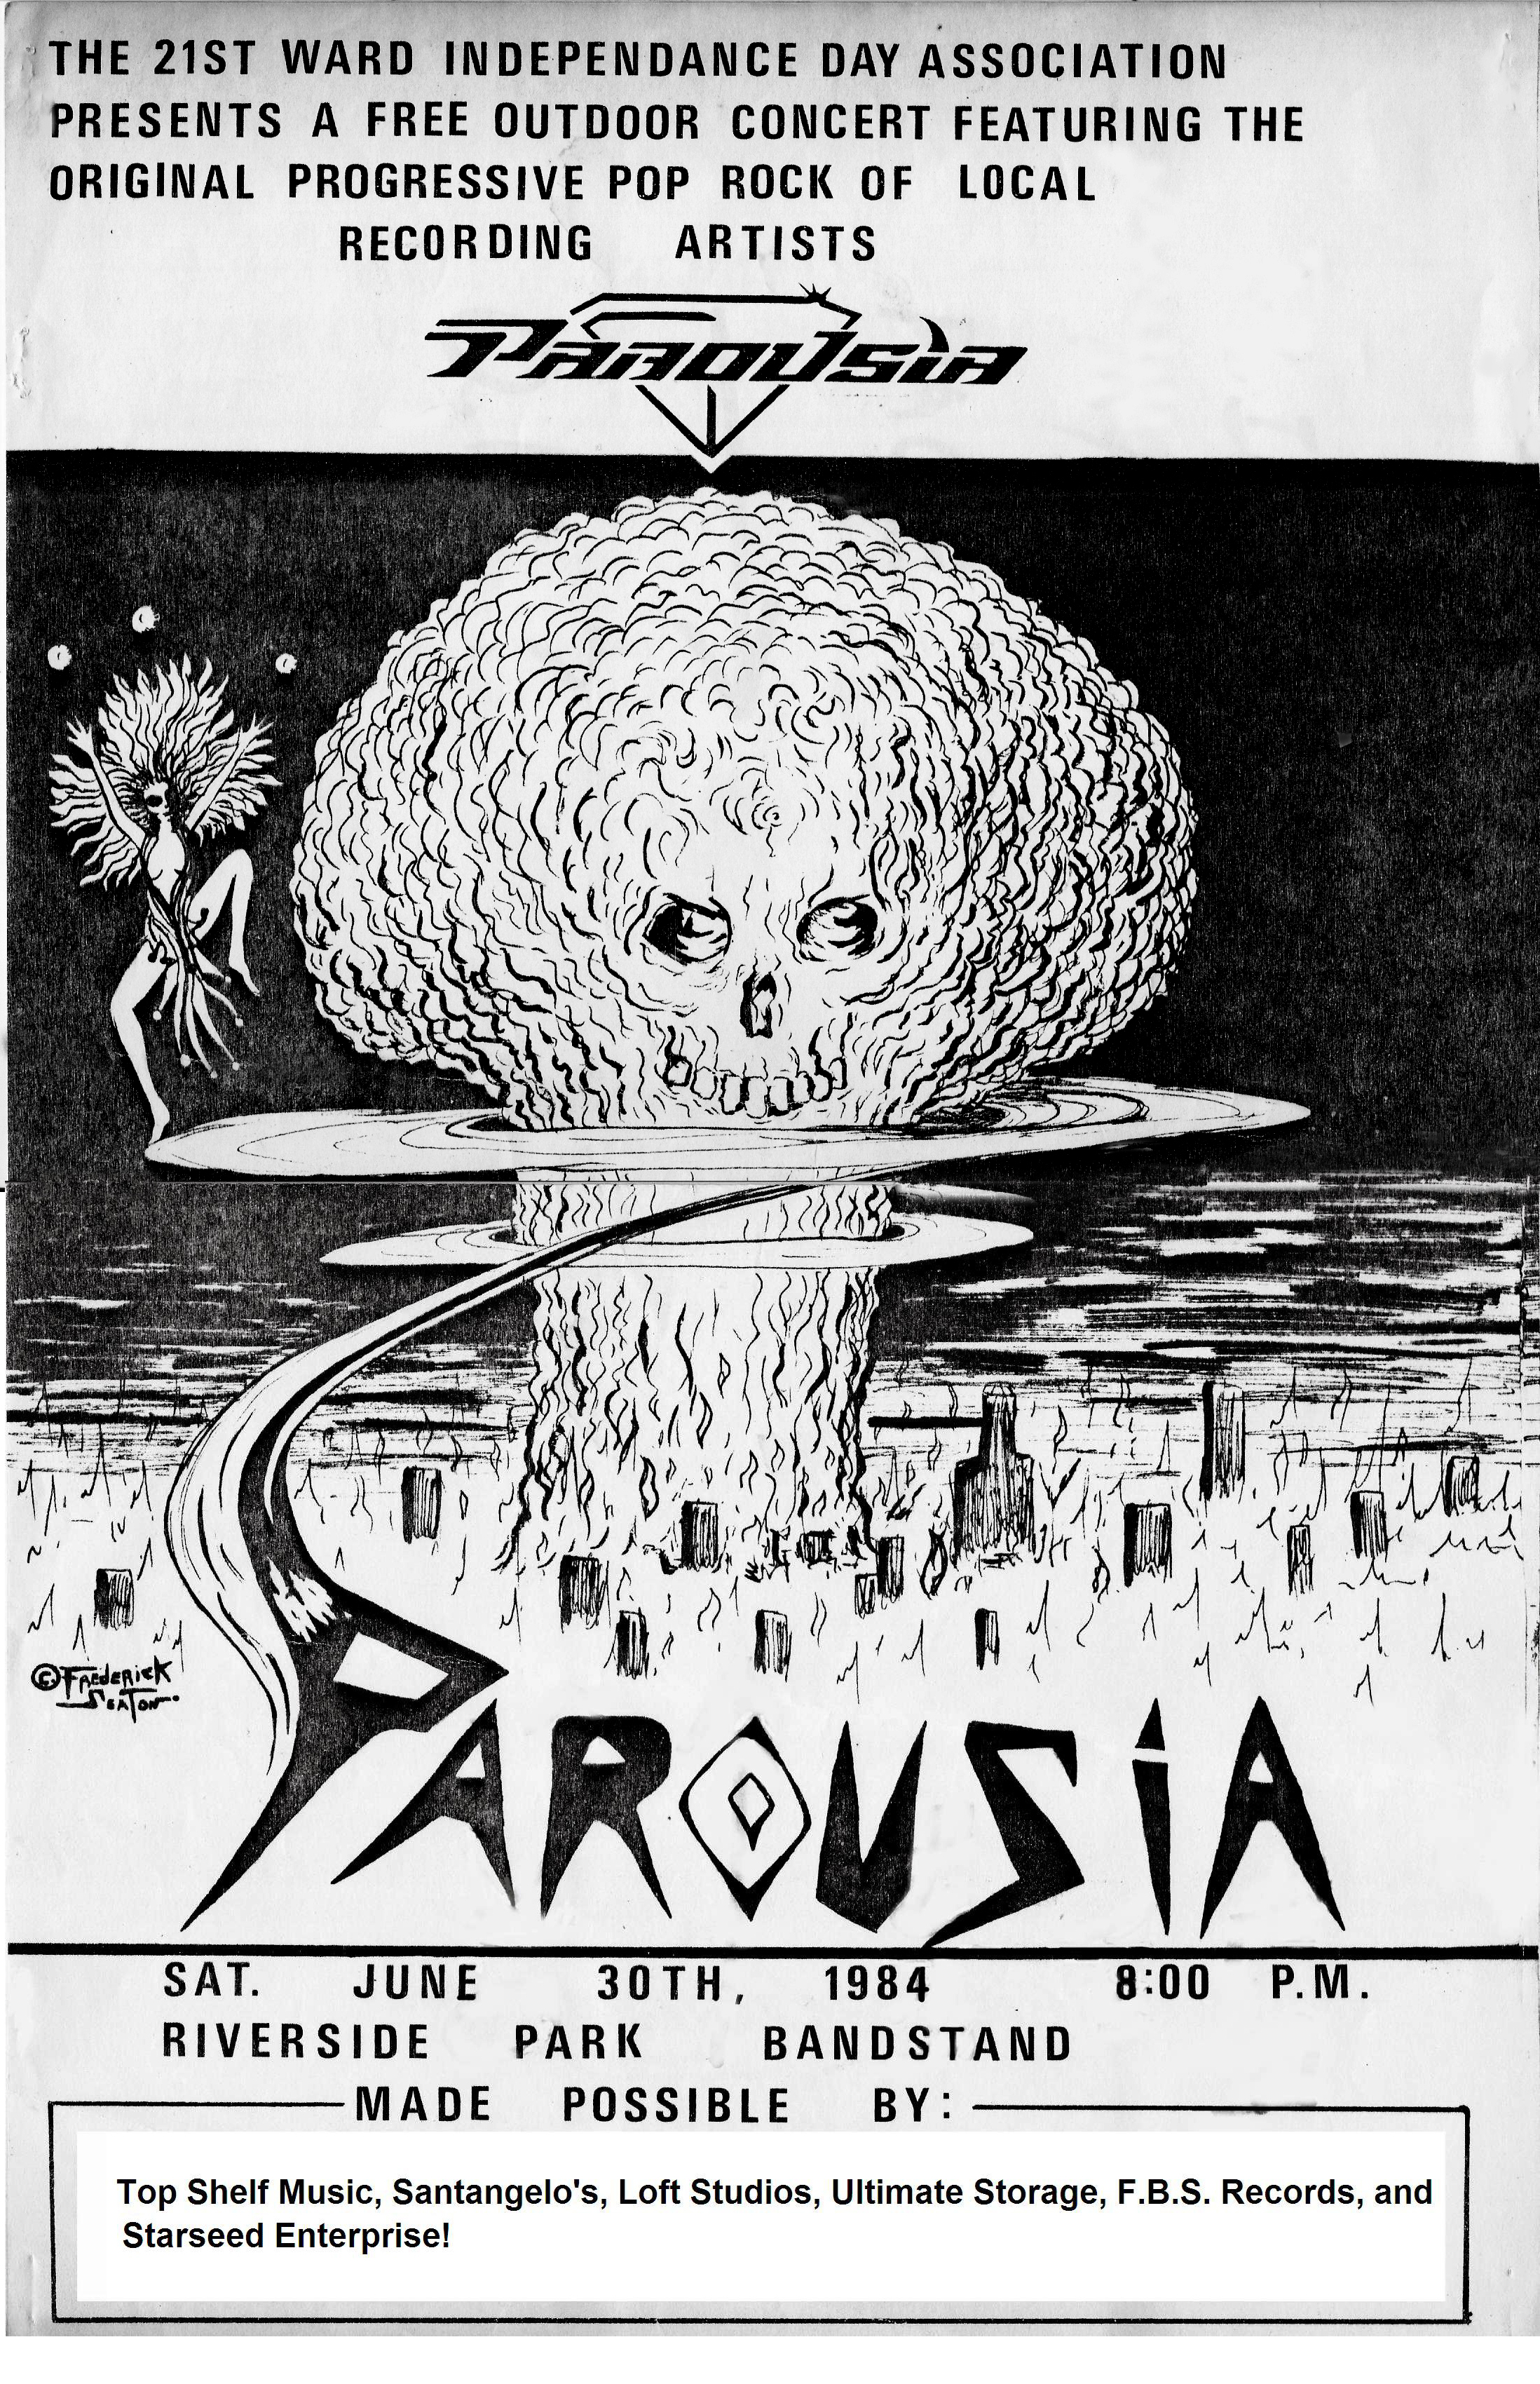 Parousia at Riverside Park, June 30th 1984 - Poster by Frederick Seaton